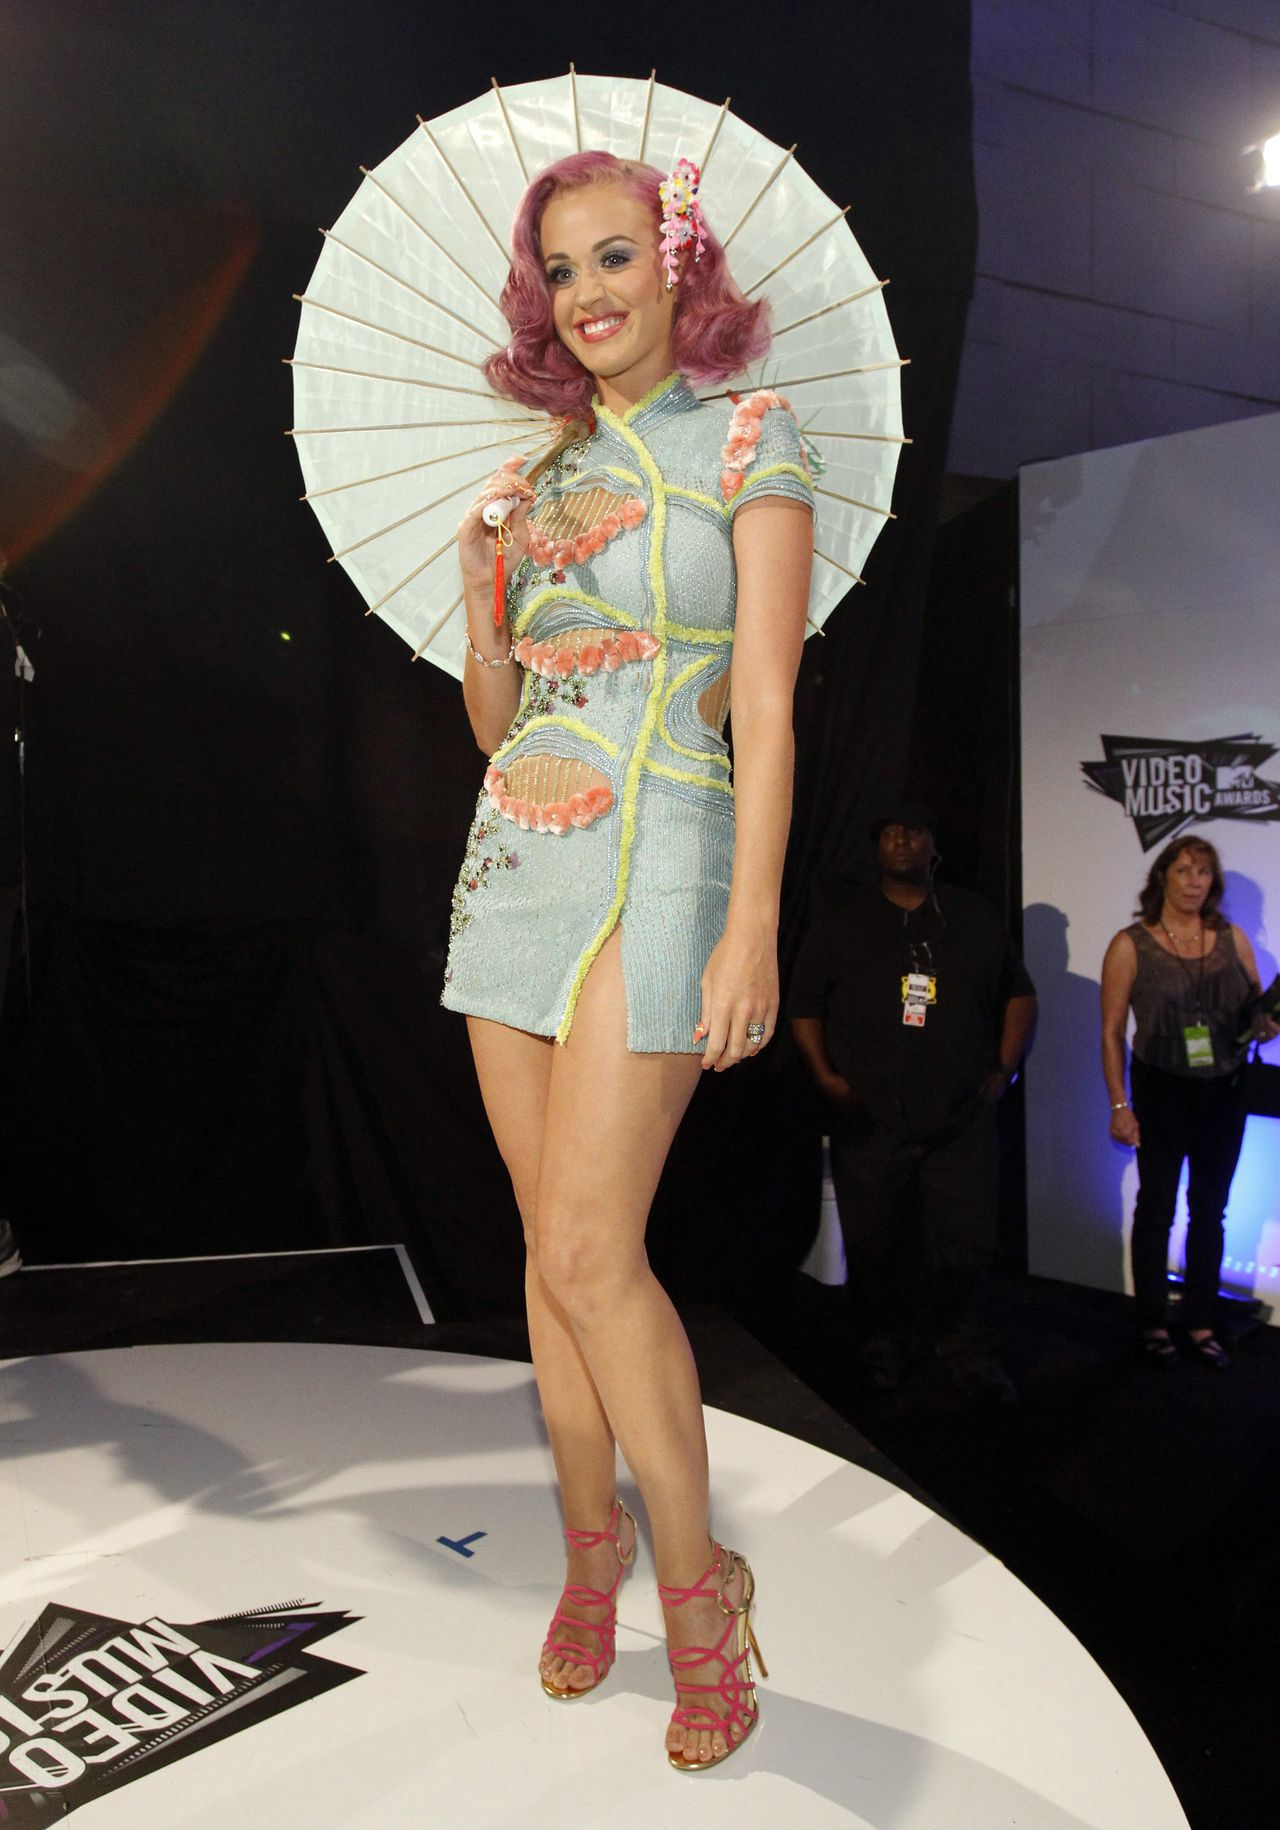 Singer Katy Perry arrives at the 2011 MTV Video Music Awards in Los Angeles, August 28, 2011. REUTERS/Mario Anzuoni (UNITED STATES - Tags: ENTERTAINMENT SOCIETY) (MTV-ARRIVALS)